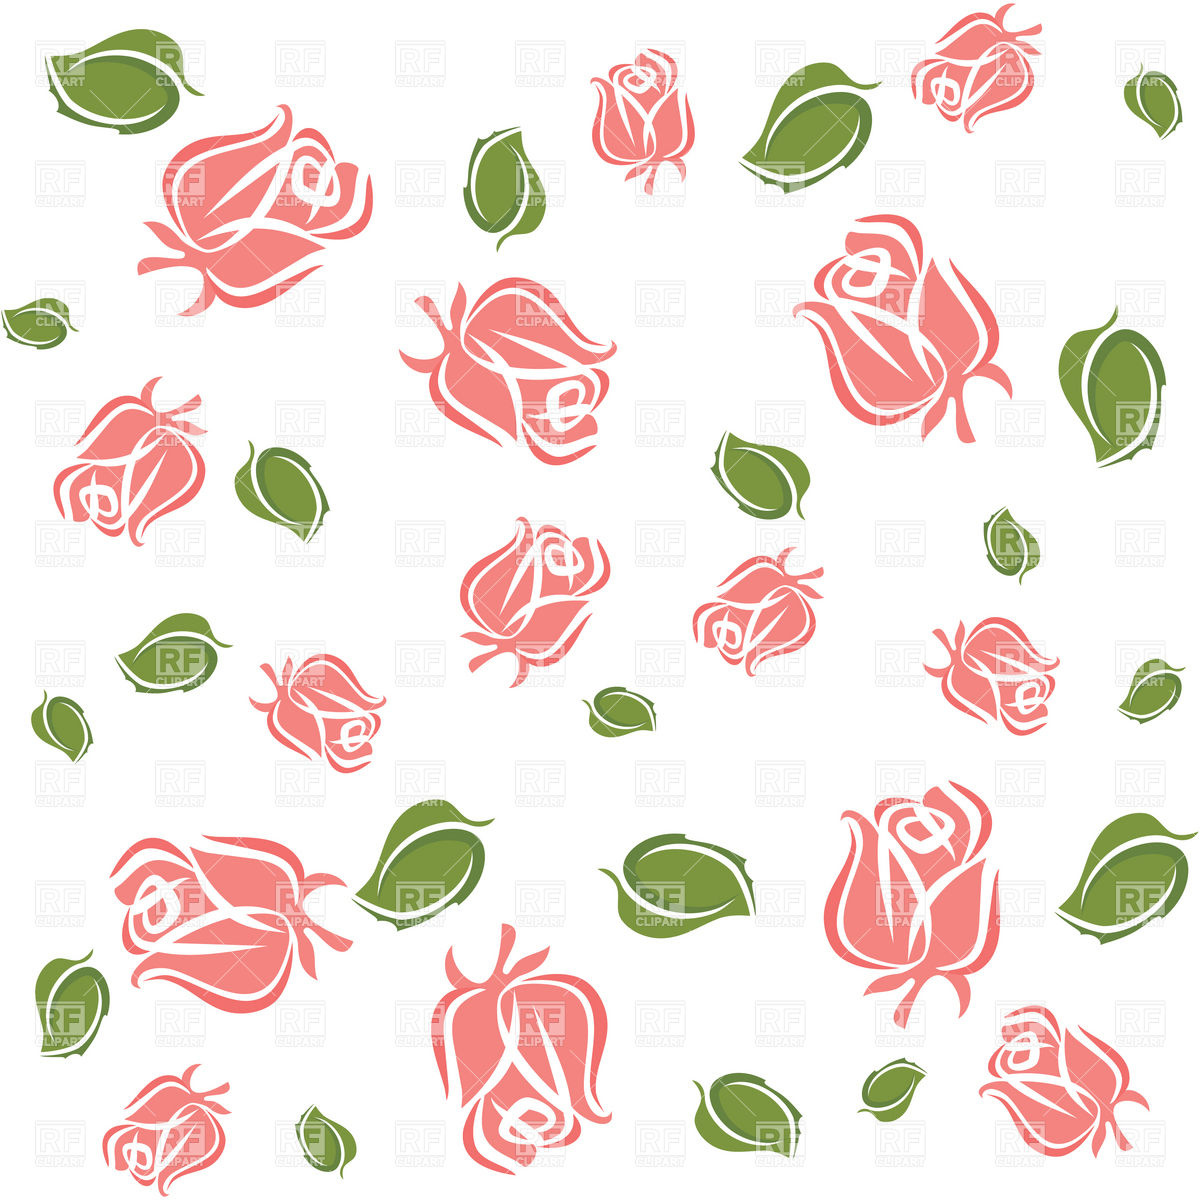 Roses with Leaves Clip Art Free